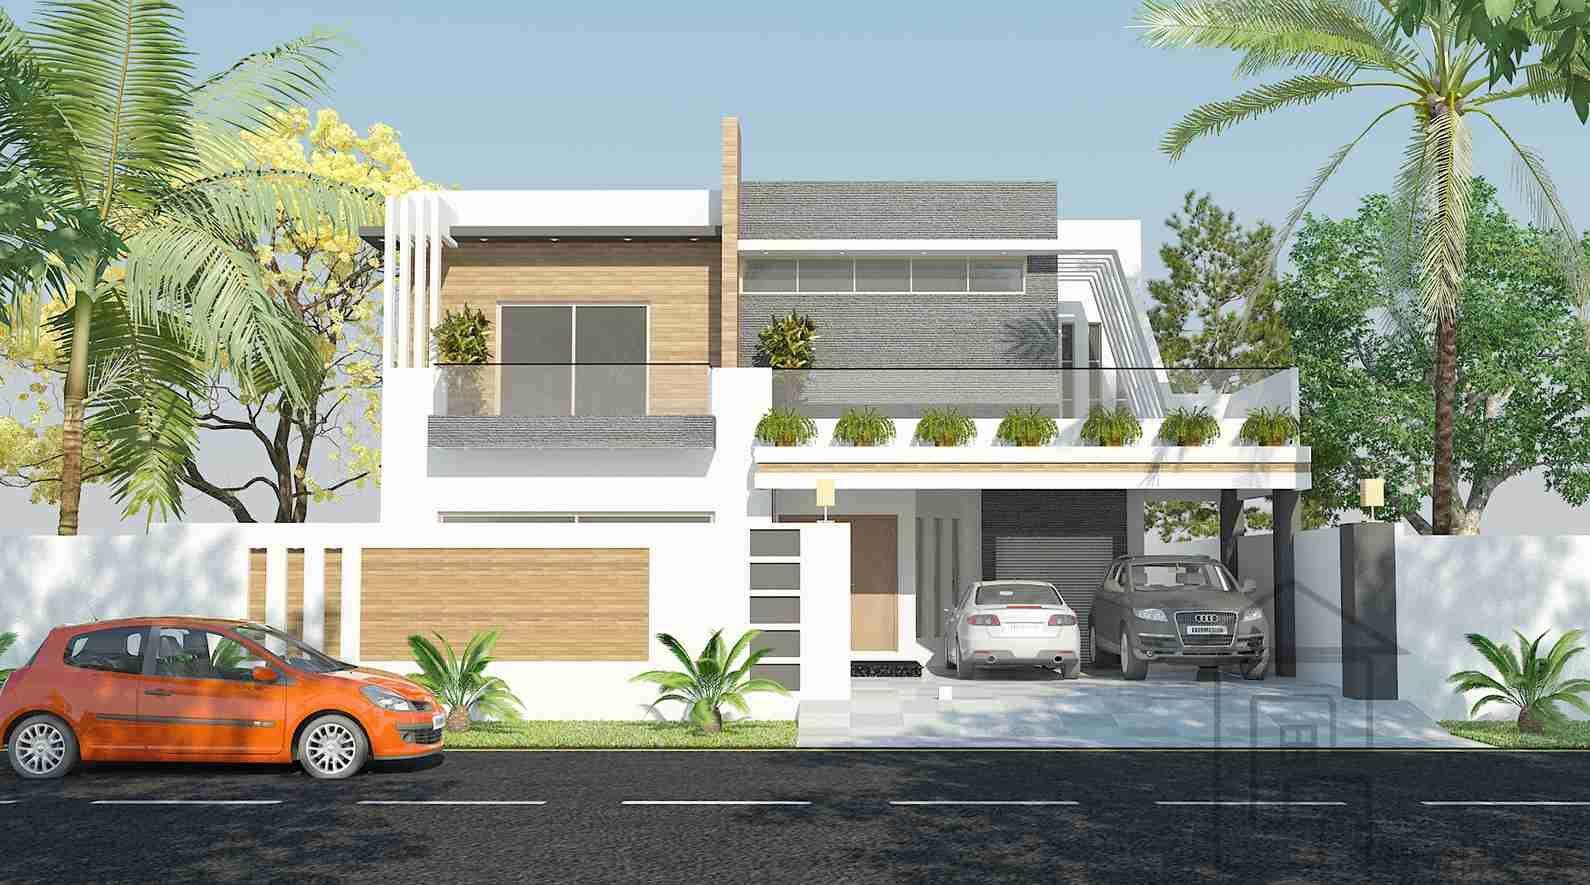 1 kanal house design front elevation | House front design ...